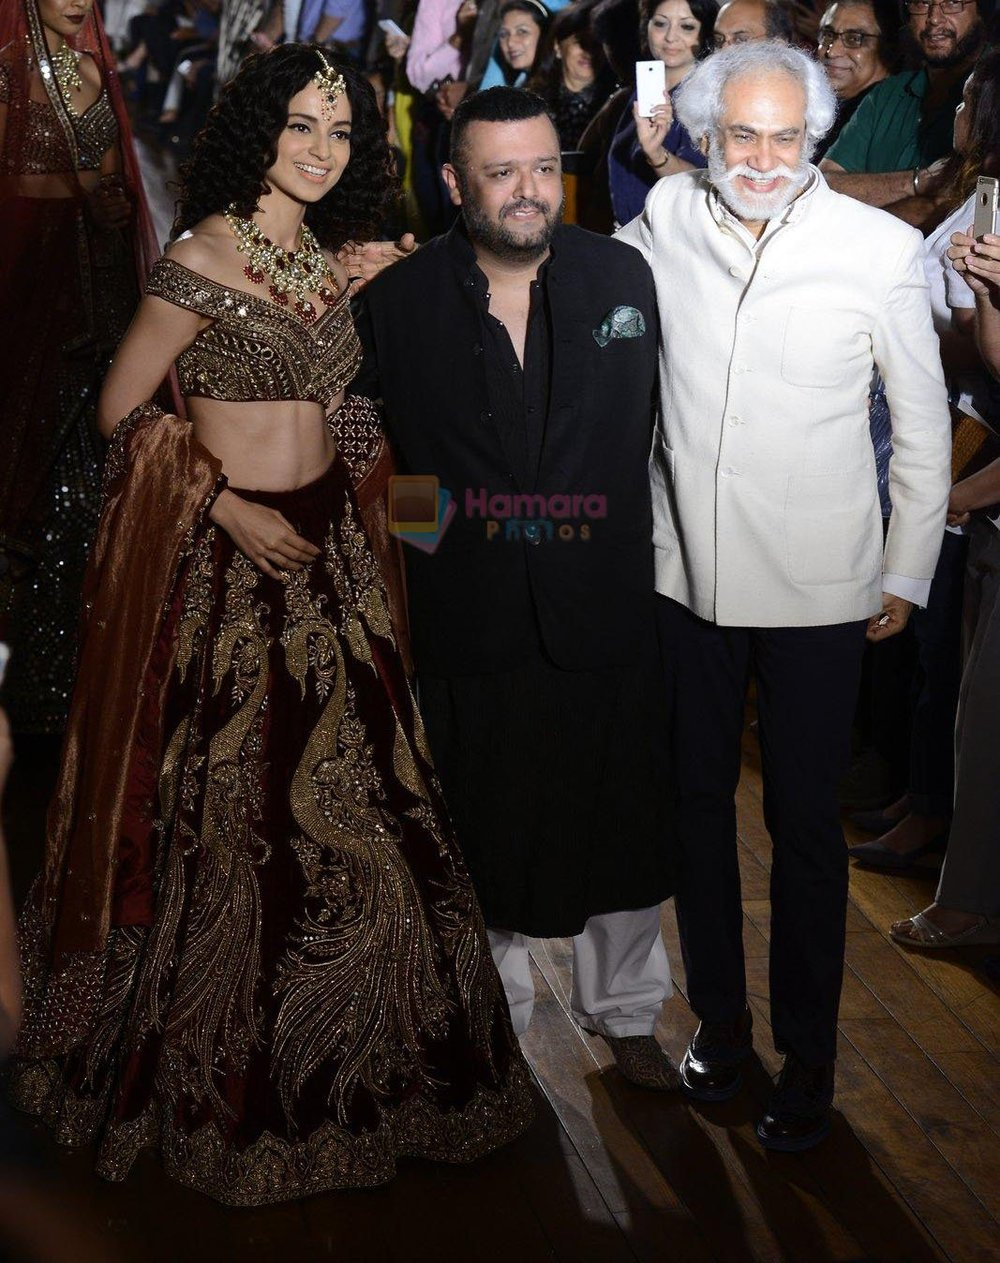 Kangana-Ranaut-Manav-Gangwani-during-Manav-Gangwani-latest-collection-Begum-e-Jannat-at-the-FDCI-India-Couture-Week-2016-on-24-July-2016-1.jpg